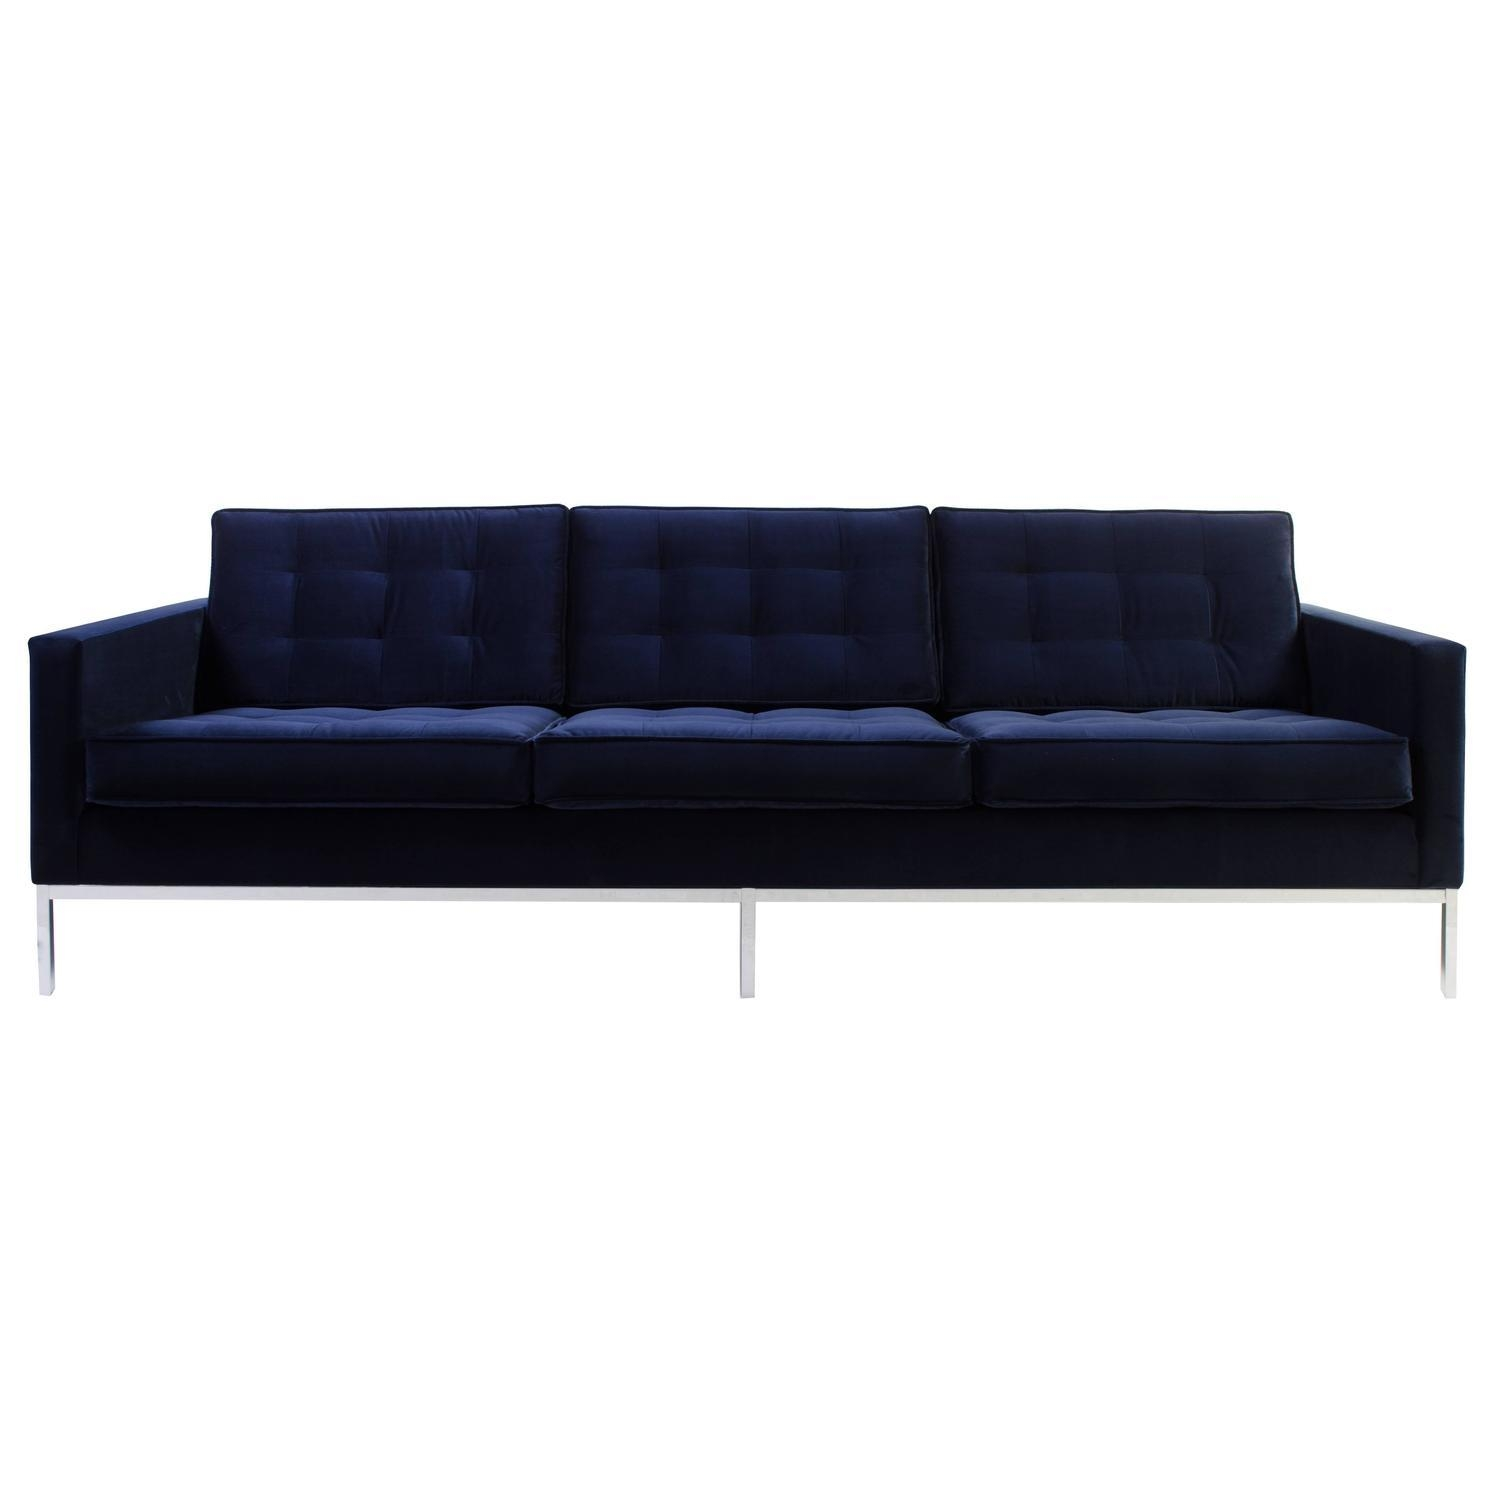 Florence Knoll Sofa In Navy Velvet For Sale At 1Stdibs Regarding Florence Knoll Sofas (View 8 of 20)